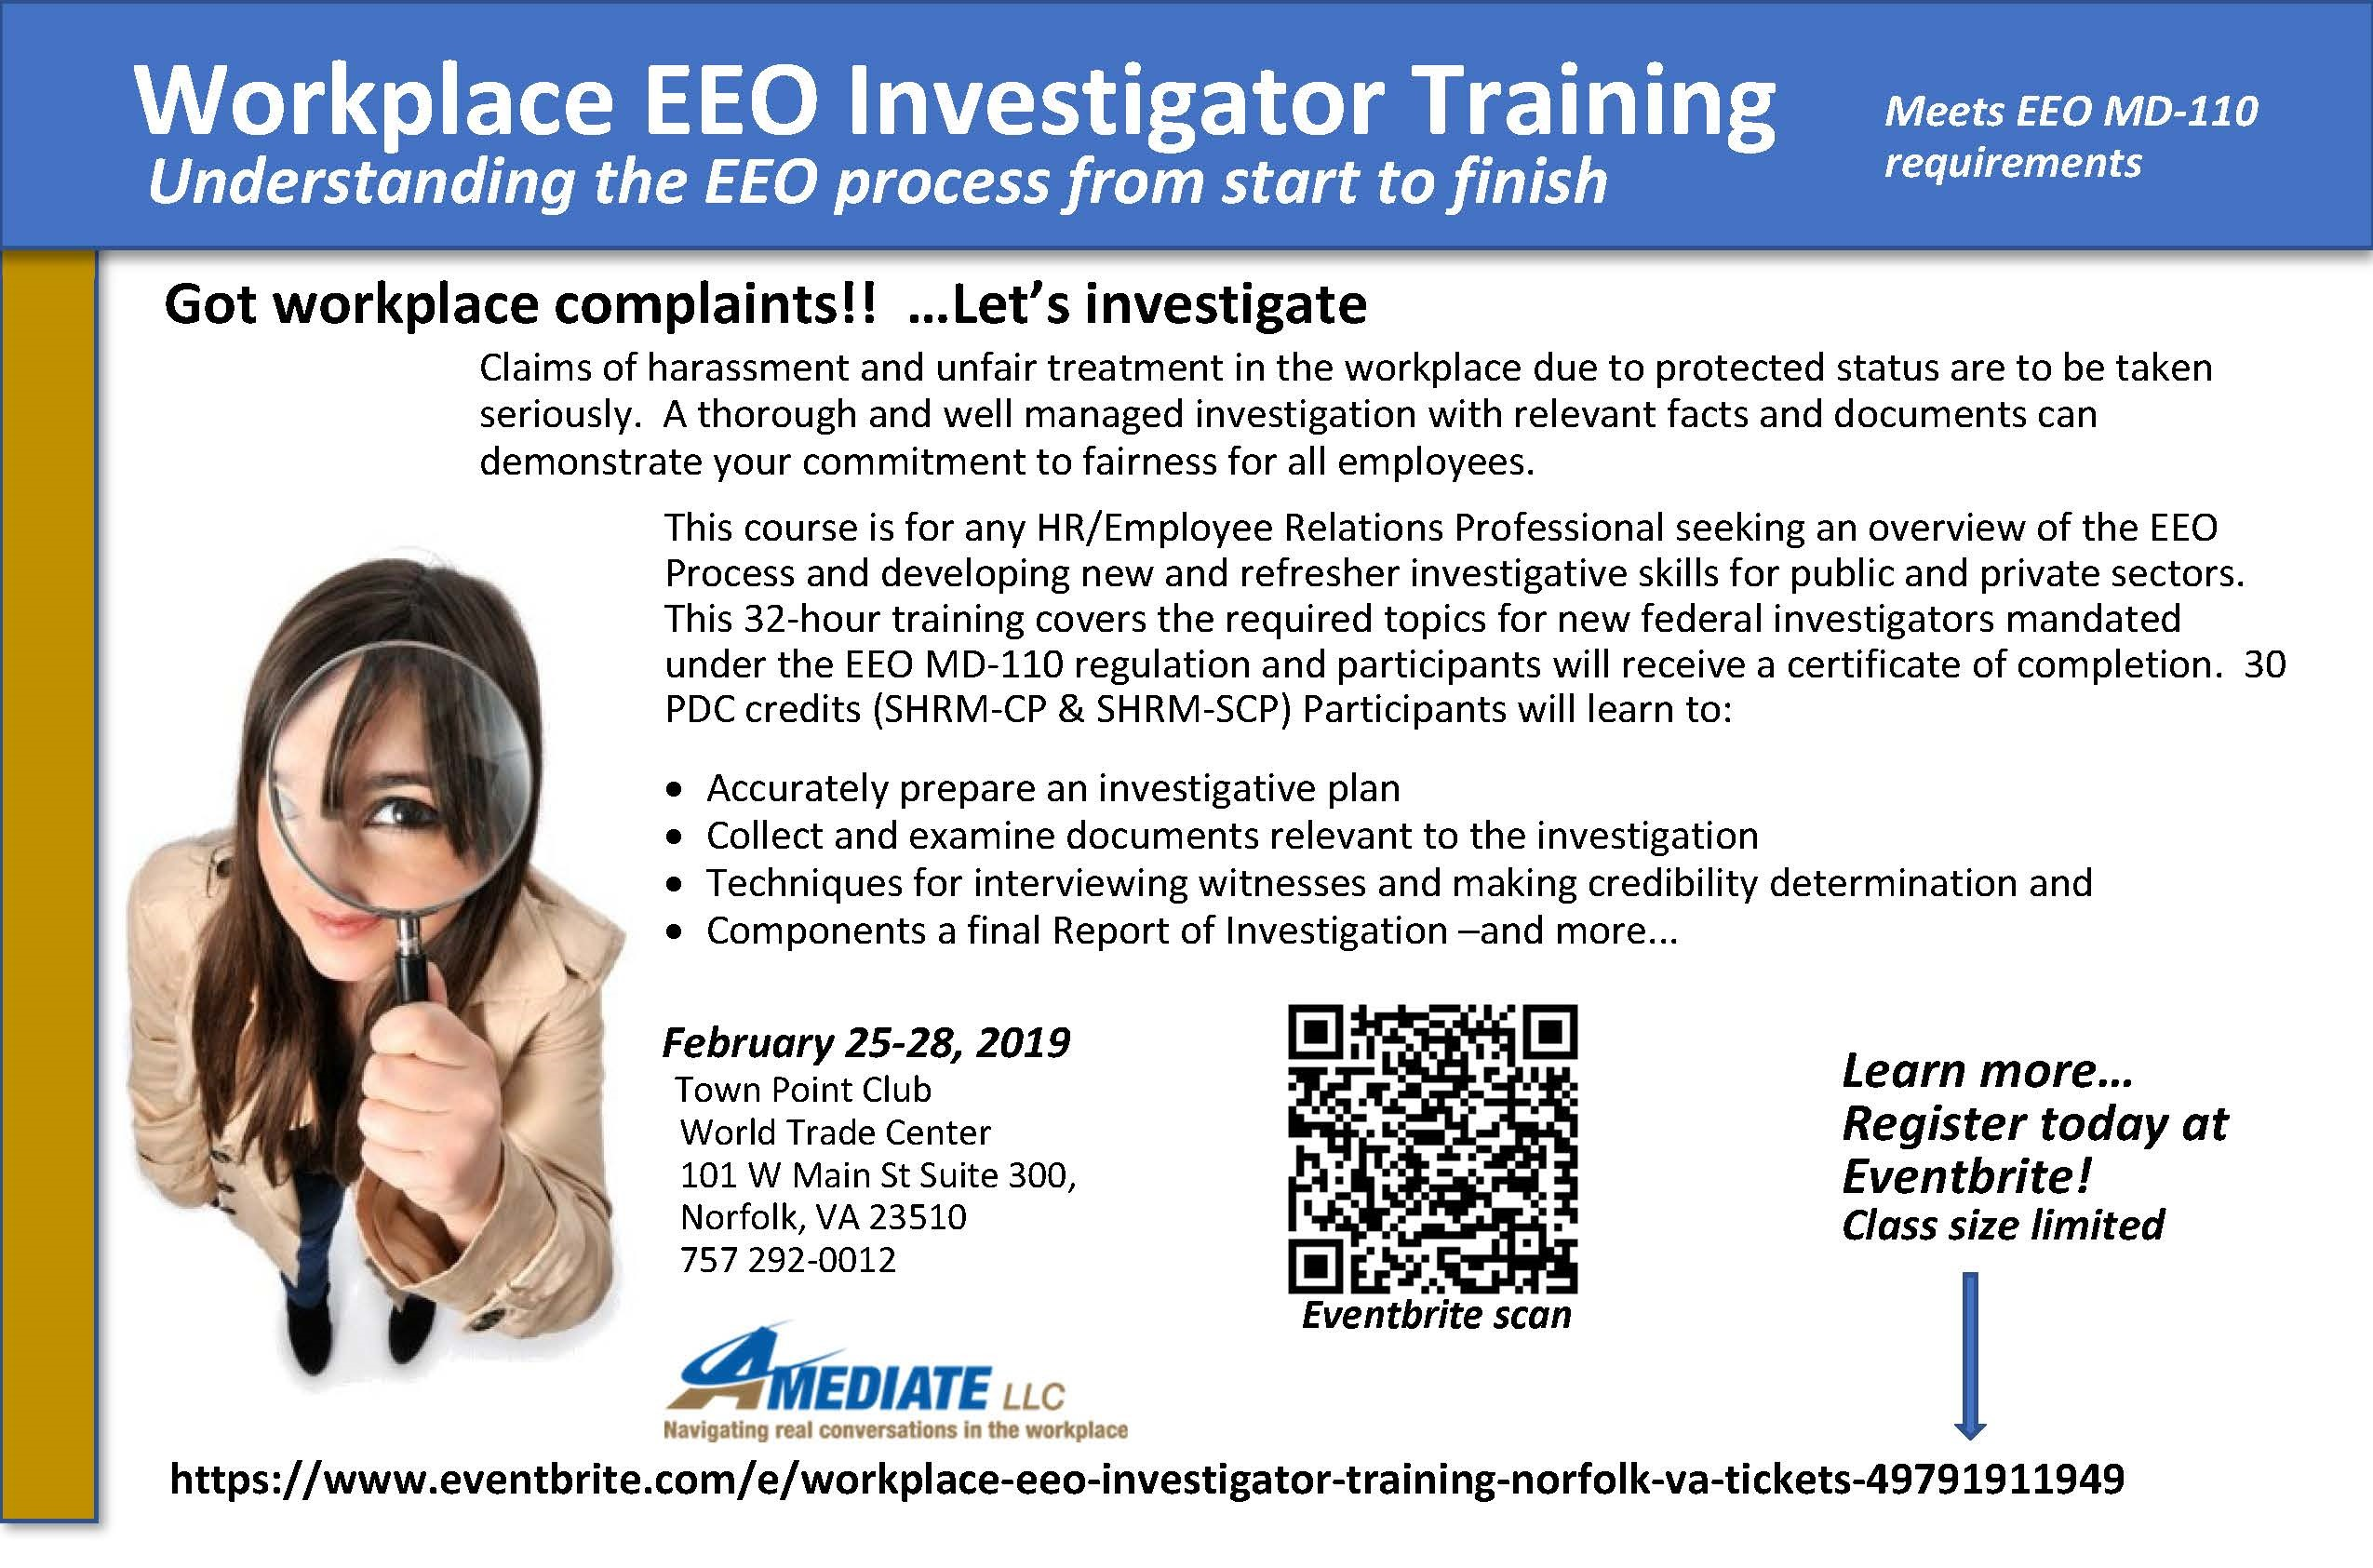 EEO Workplace Investigator Training